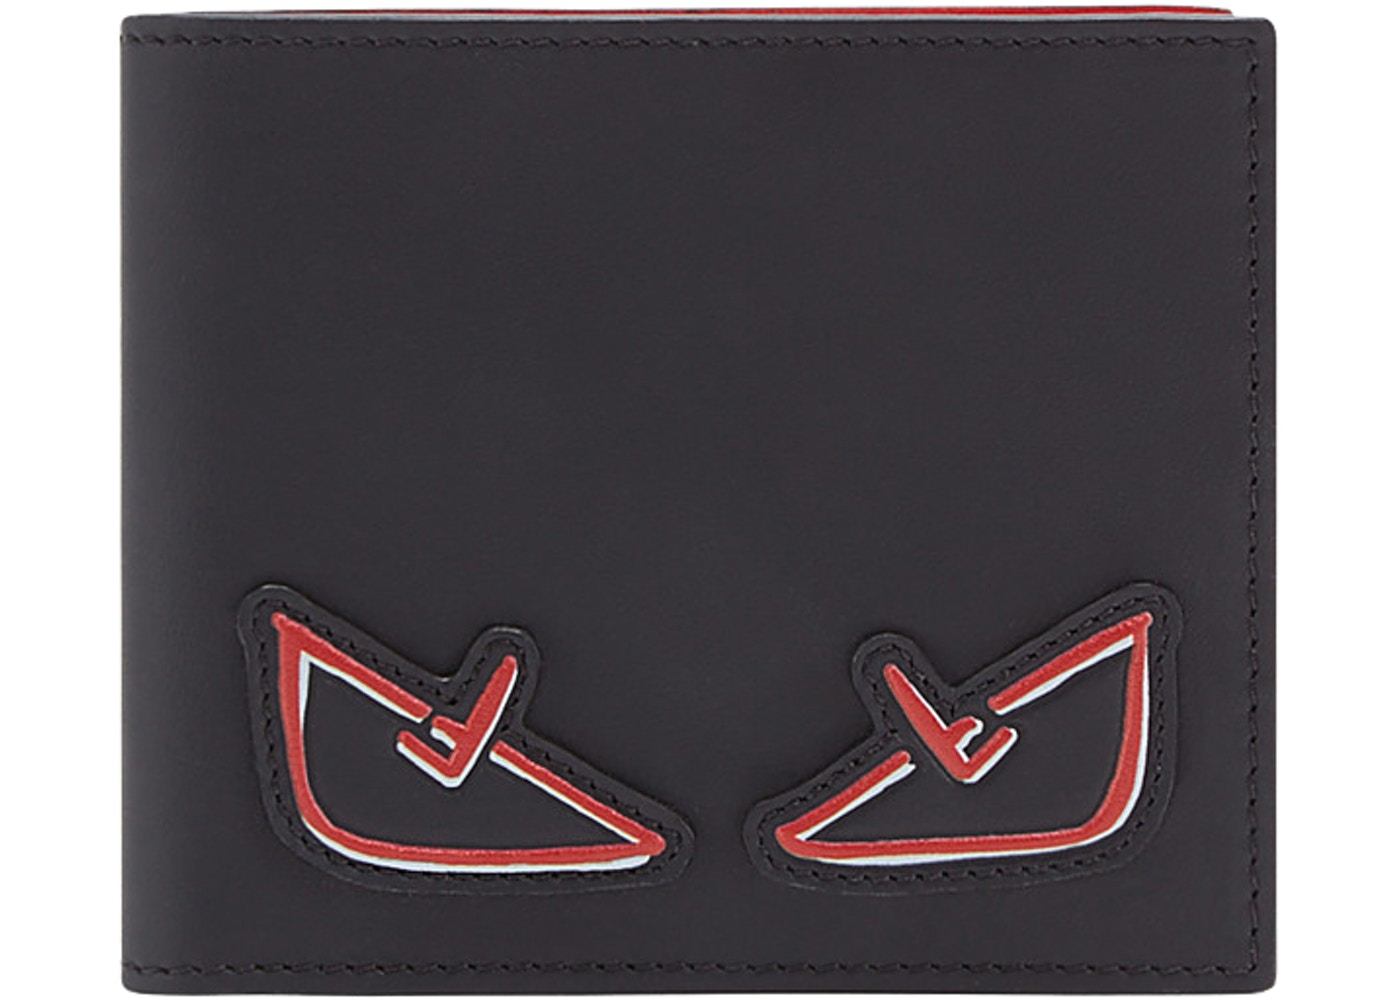 18bc698865 Fendi Bifold Wallet Monster Eyes Black/Red